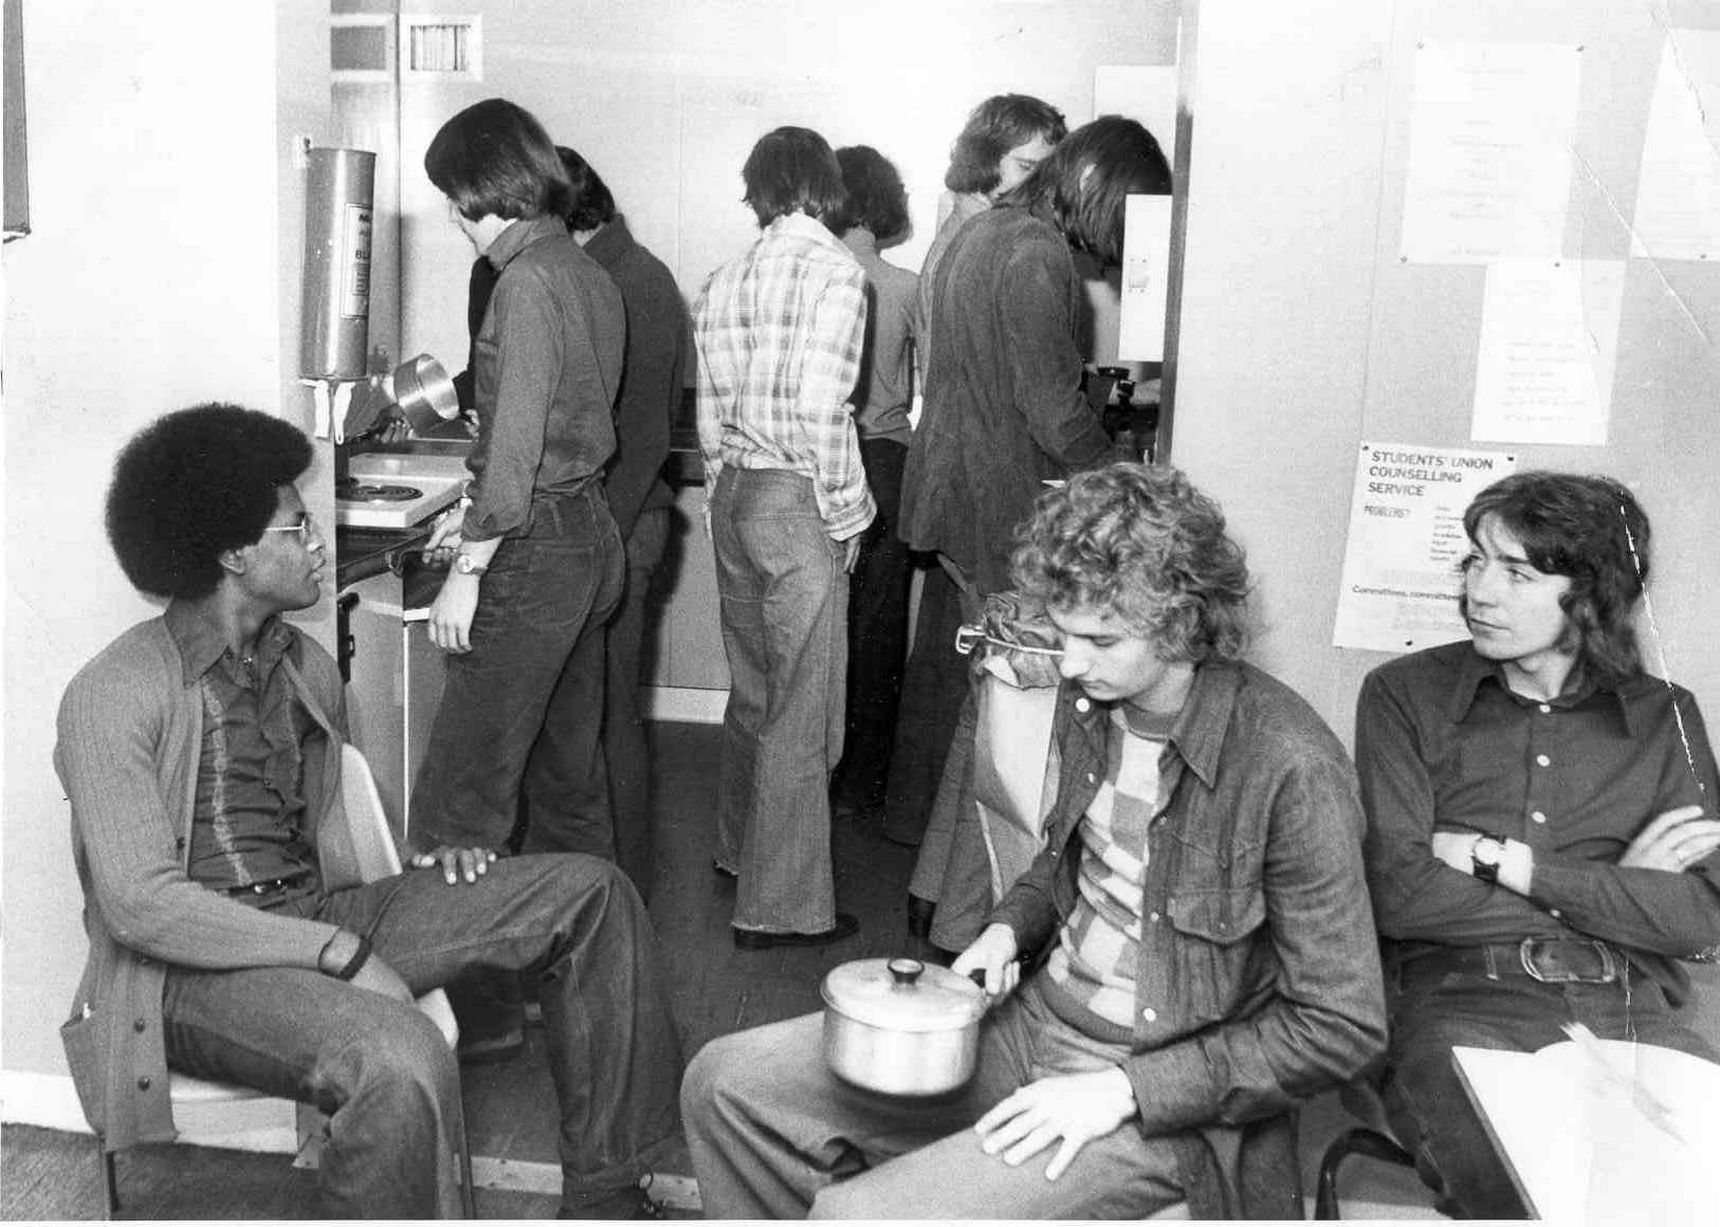 Kitchen queue (1970s)